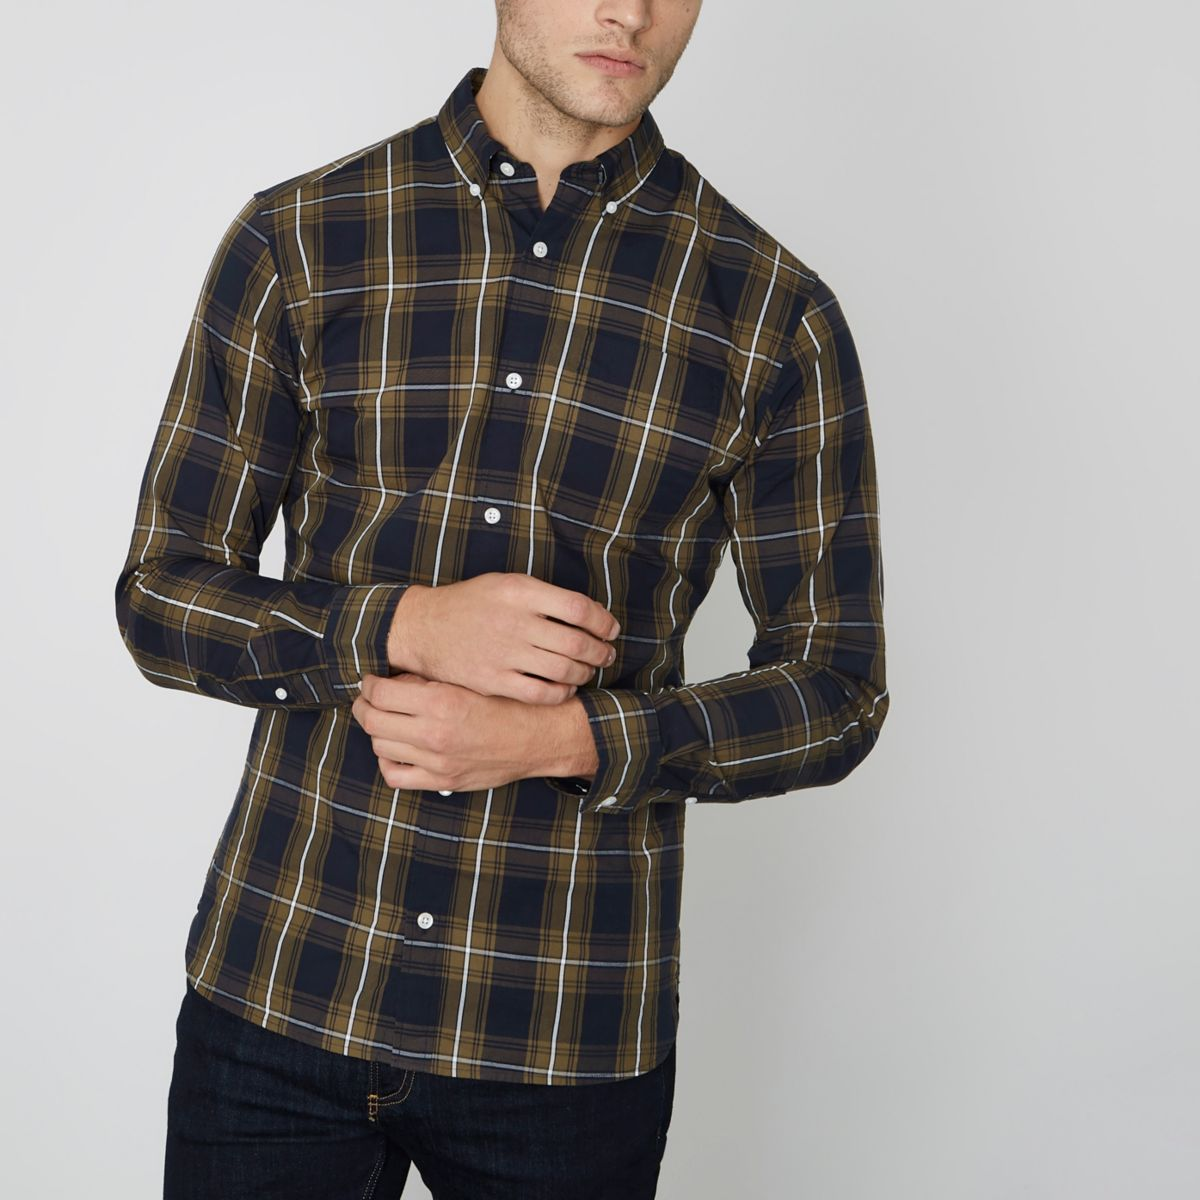 Green Jack & Jones Premium slim check shirt